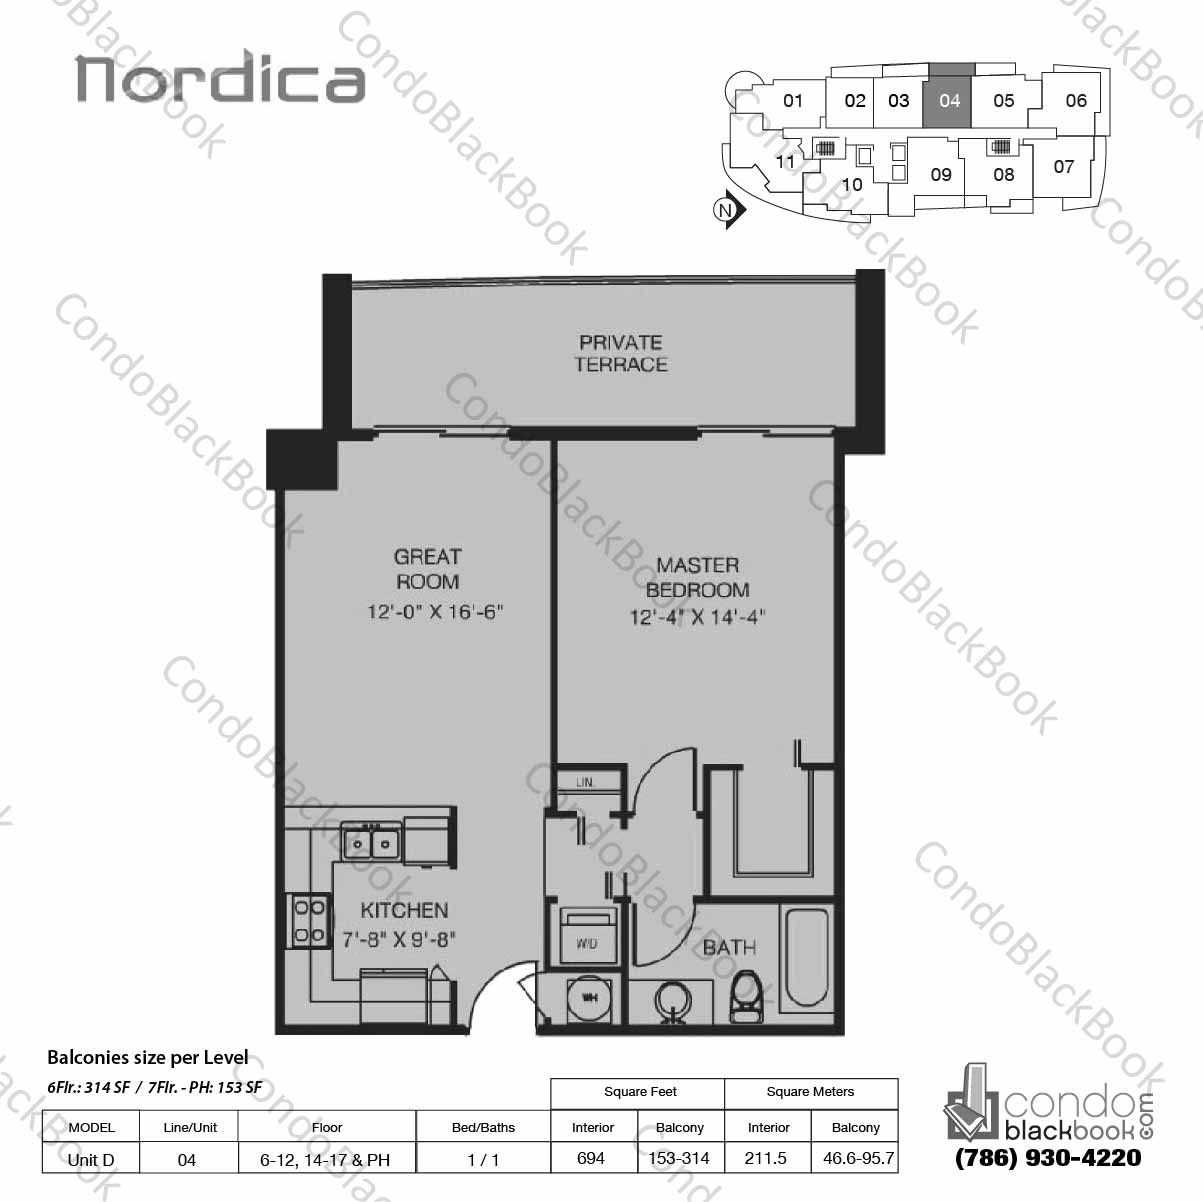 Floor plan for Nordica Coral Way, model Unit D, line 04,  1 / 1 bedrooms, 694 sq ft